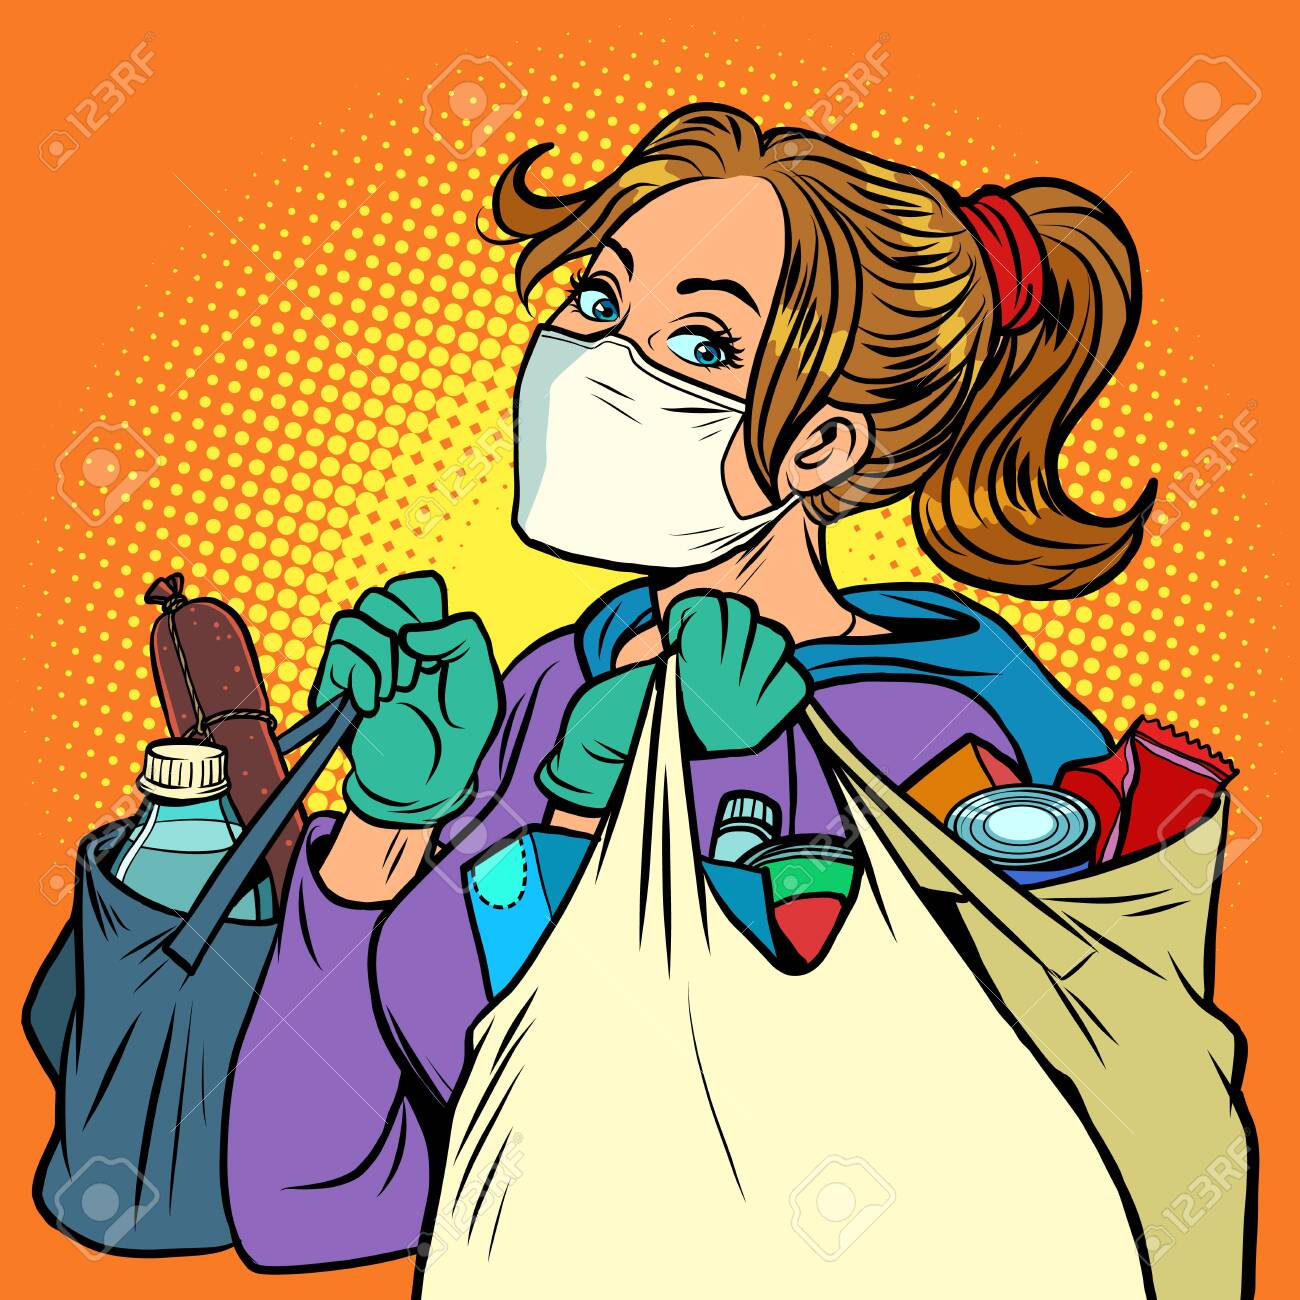 a woman in a medical mask with bags of food. Comics caricature pop art retro illustration drawing - 146269180